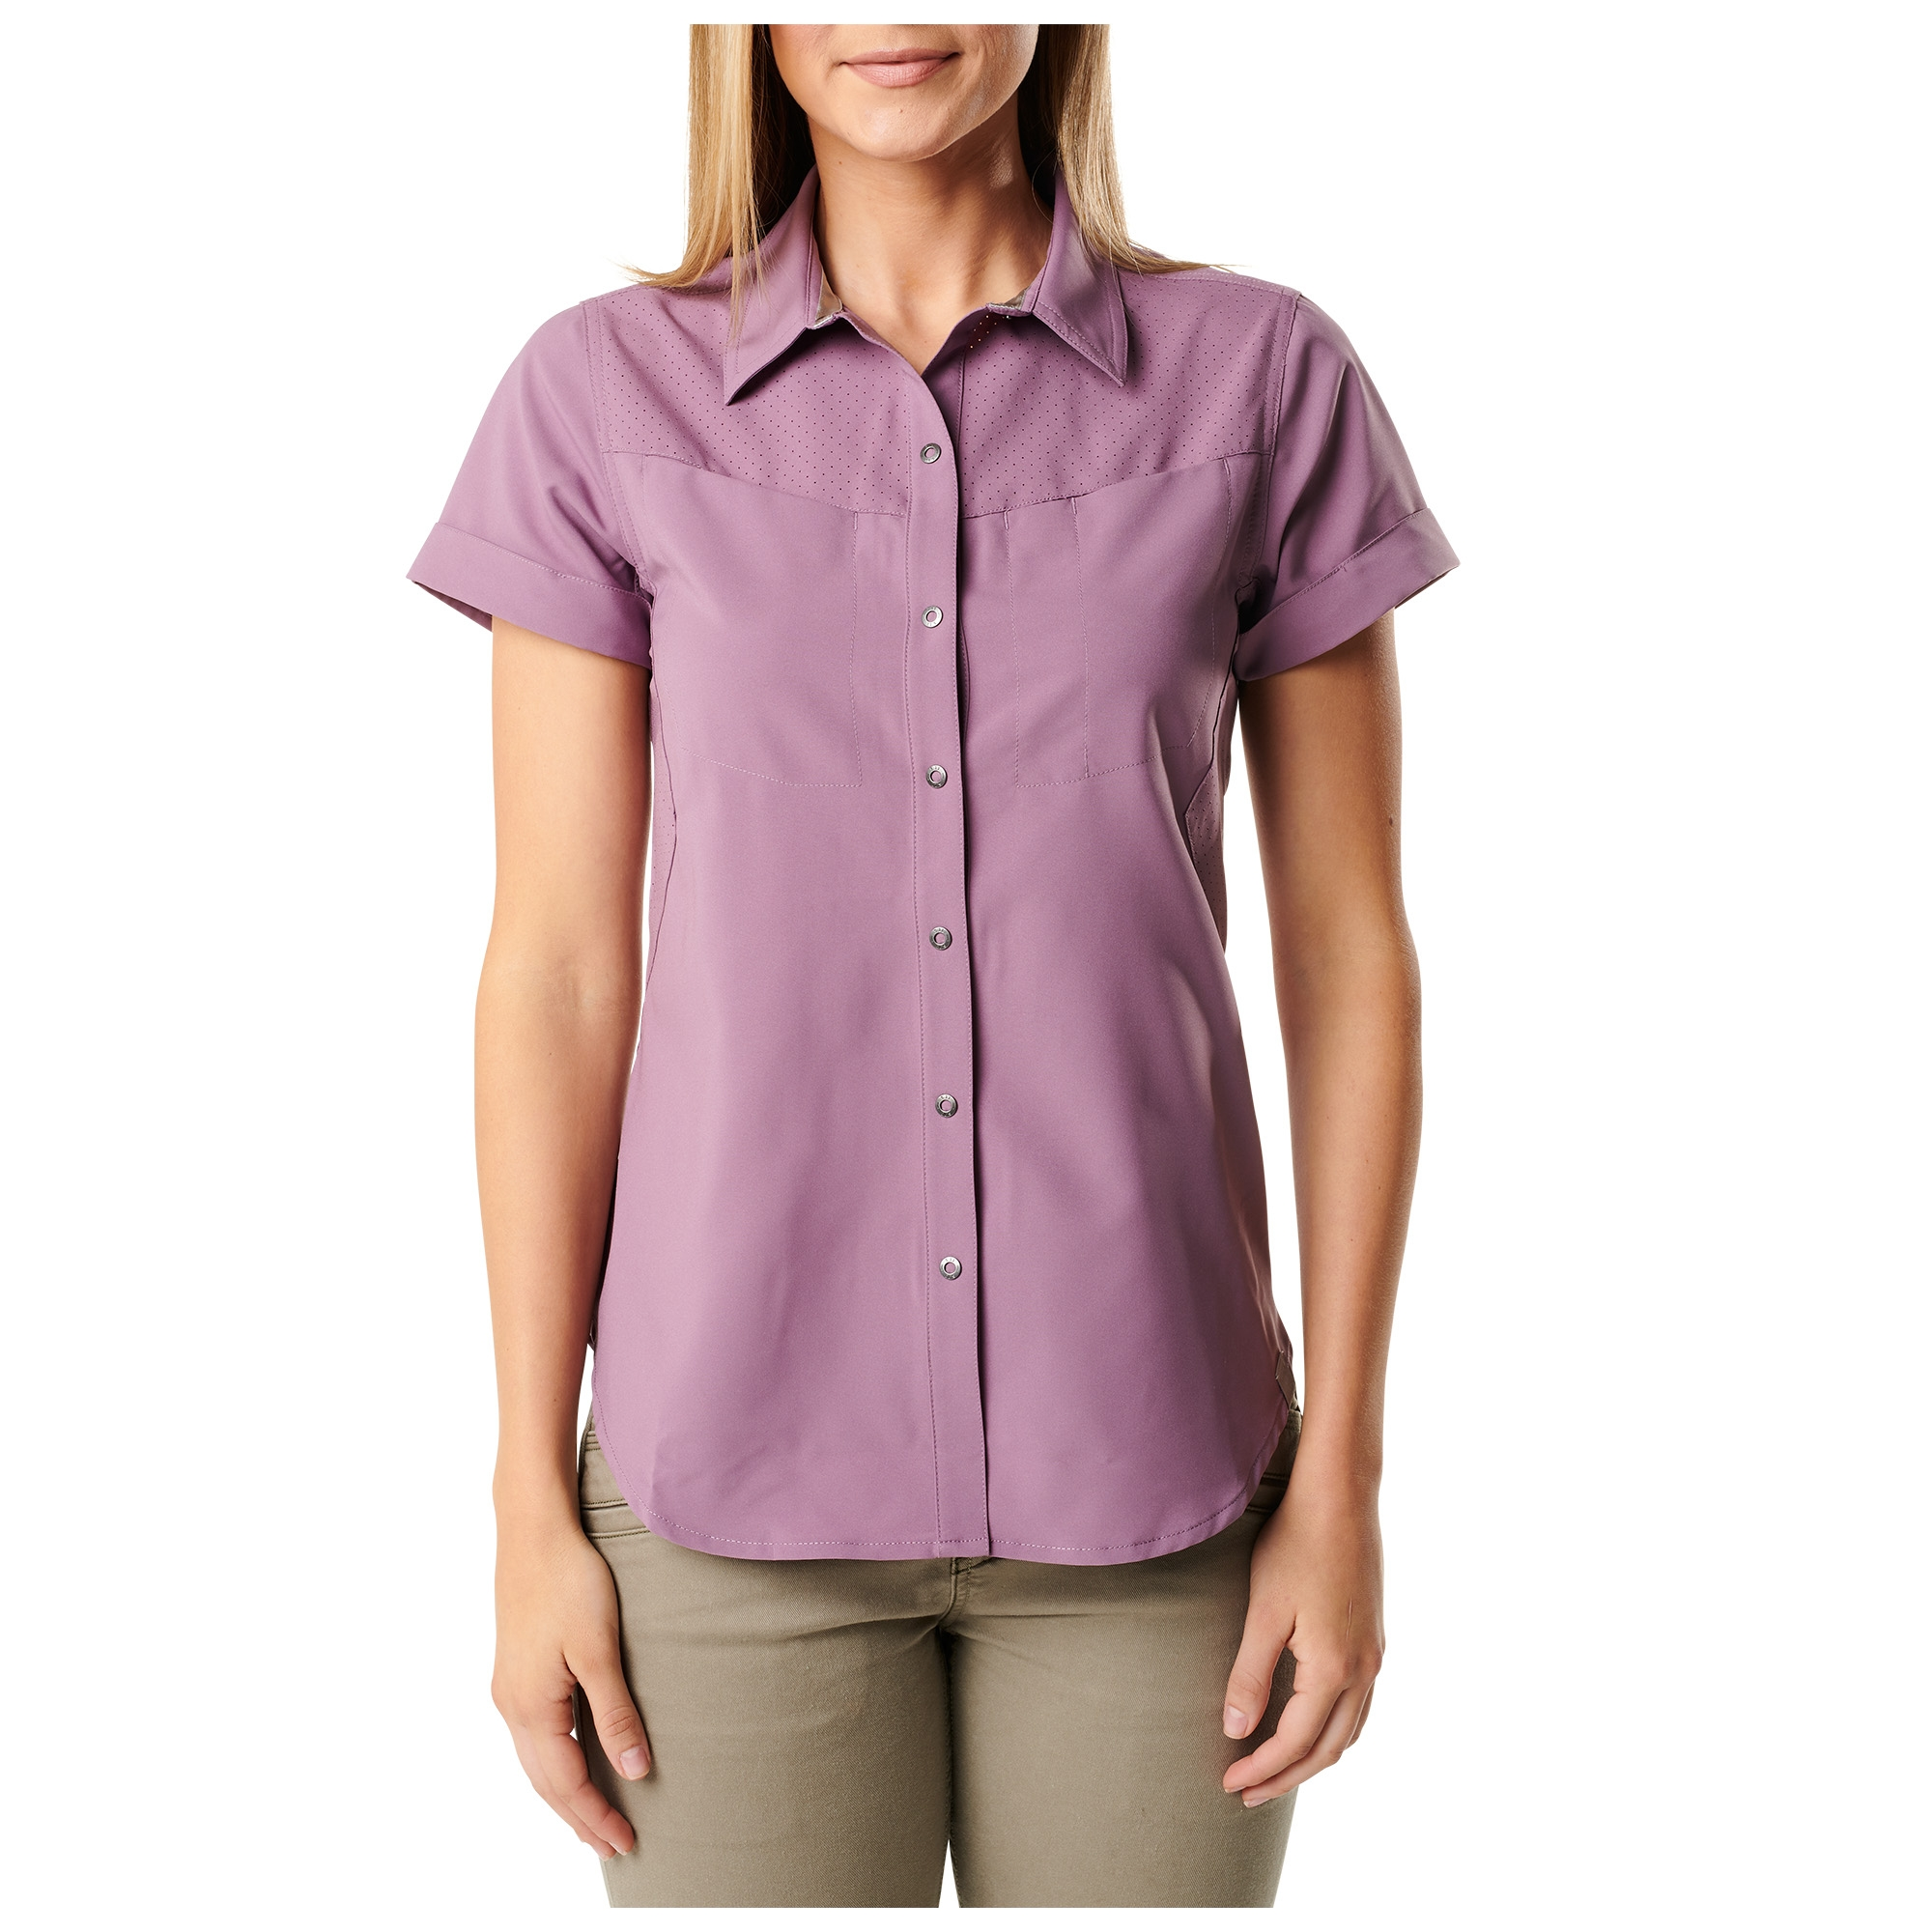 5.11 Tactical Women's Freedom Flex Short-Sleeve Shirt (Green), Size M (CCW Concealed Carry)